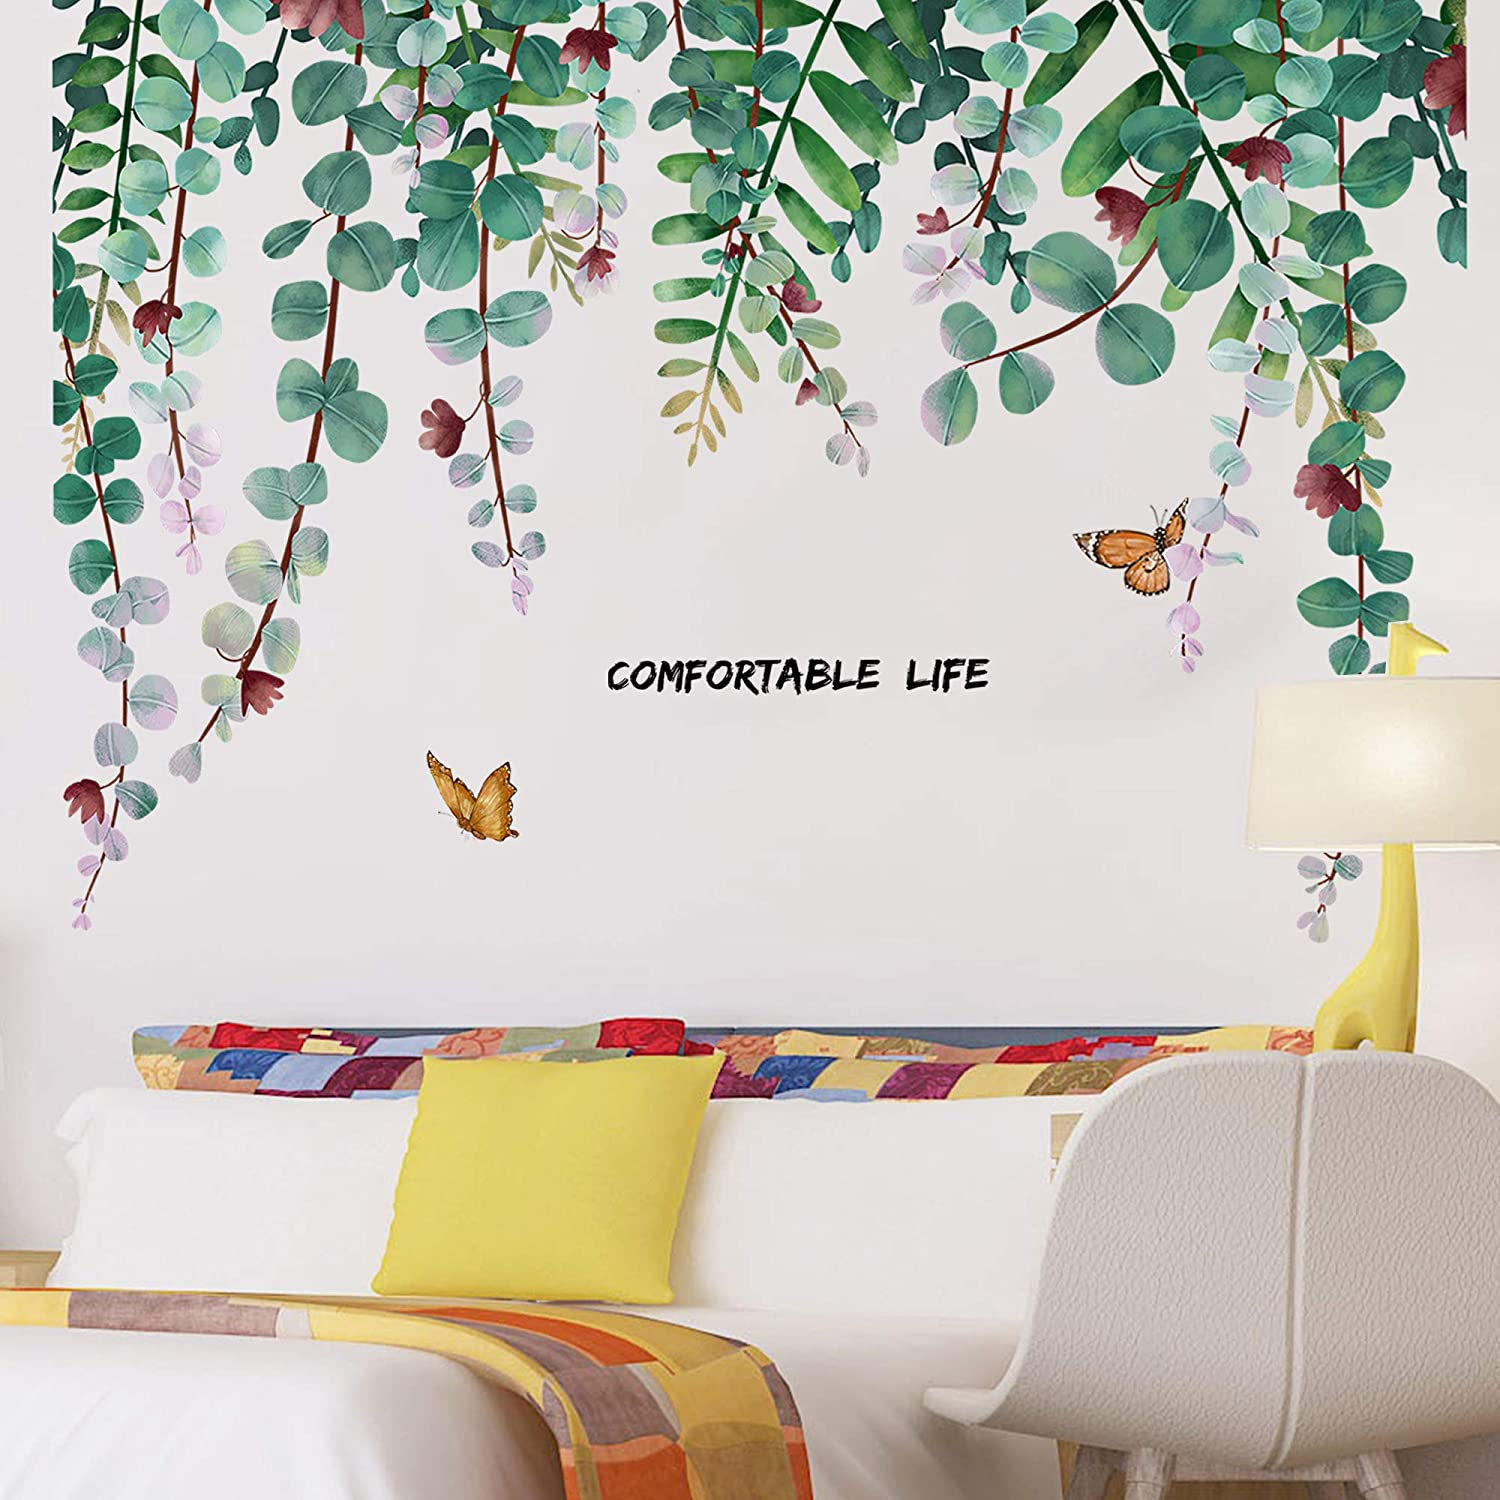 Amaonm Removable DIY 3D Green Hanging Leaves Home Wall Decoration art Decor Kids Room Wall Sticker Girls Teens Bedroom Living Room Wall Corner Wall Decals Nursery Rooms Walls Mural Peel Stick Decor (Leaf)